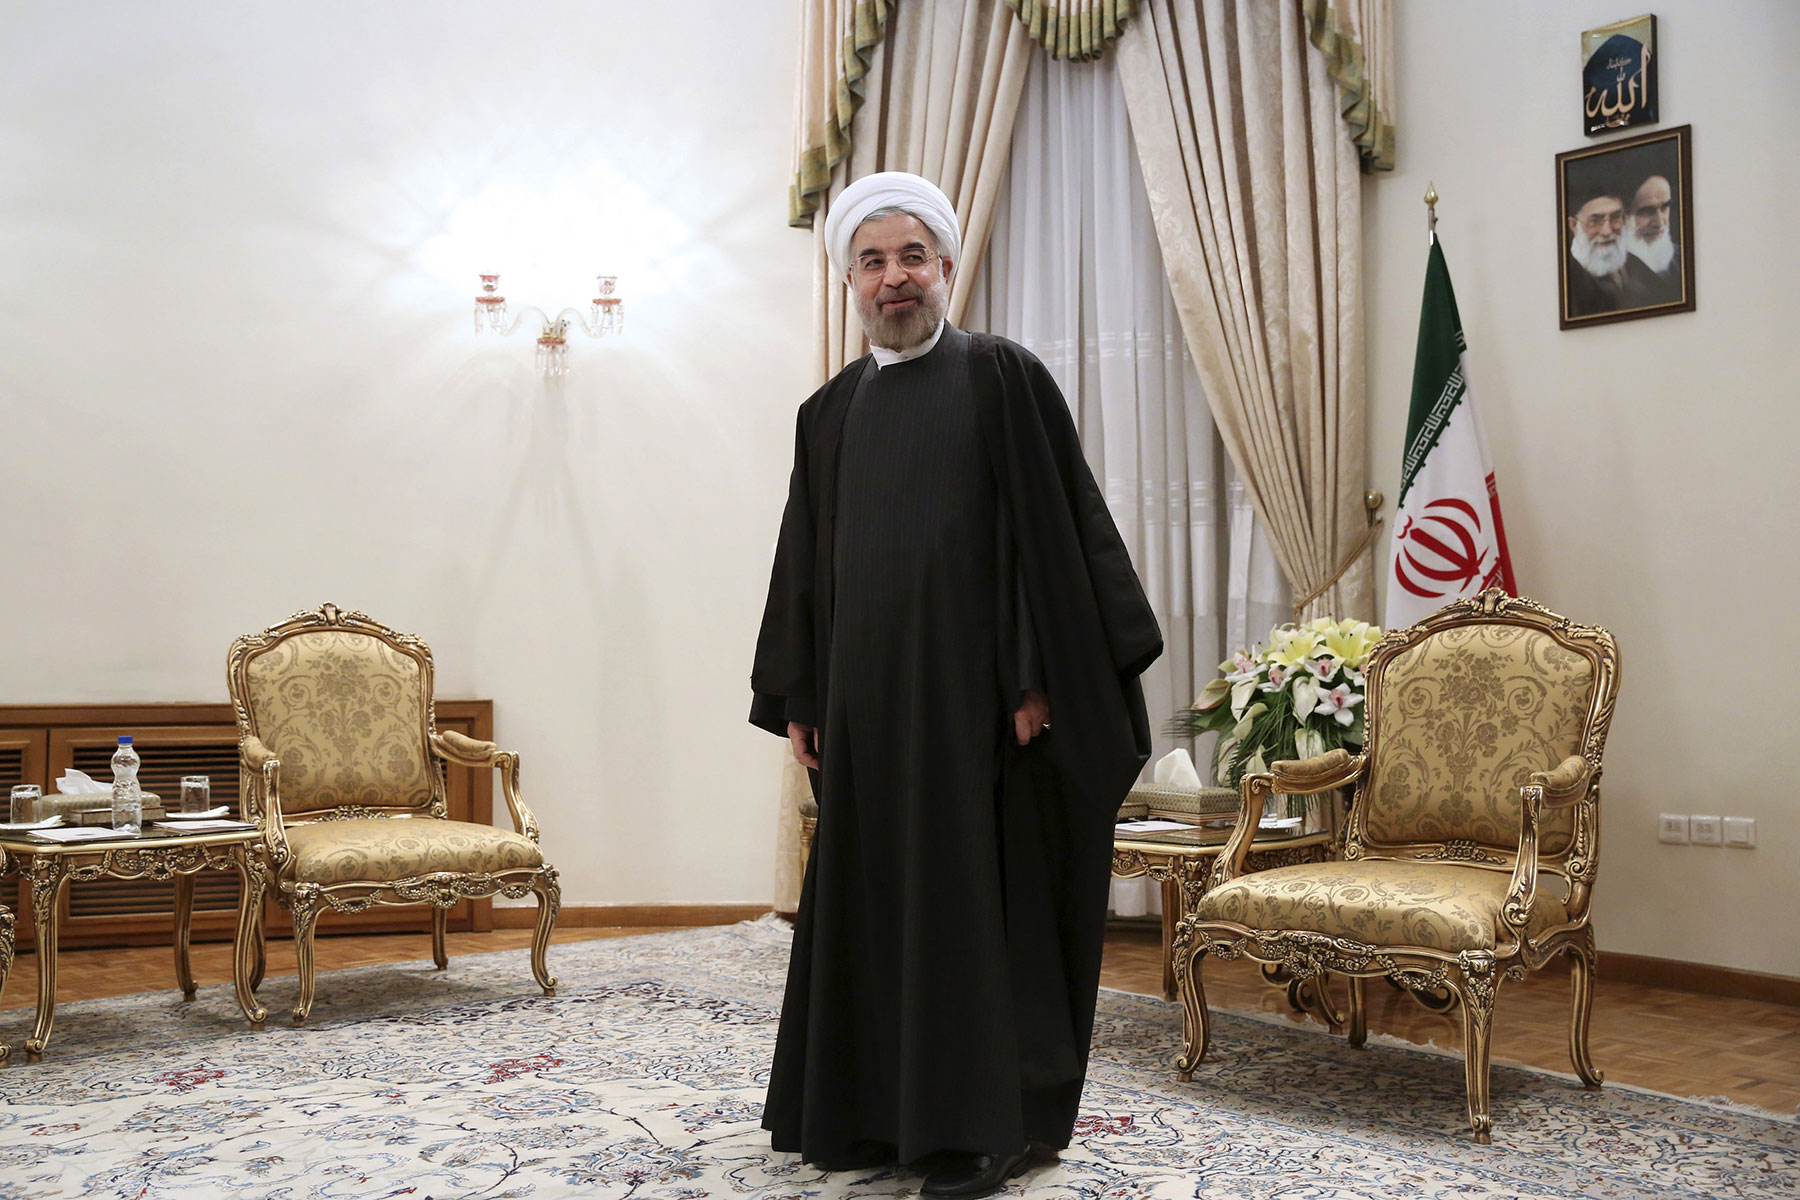 President Rouhani holds the key to Iran's economic revival.